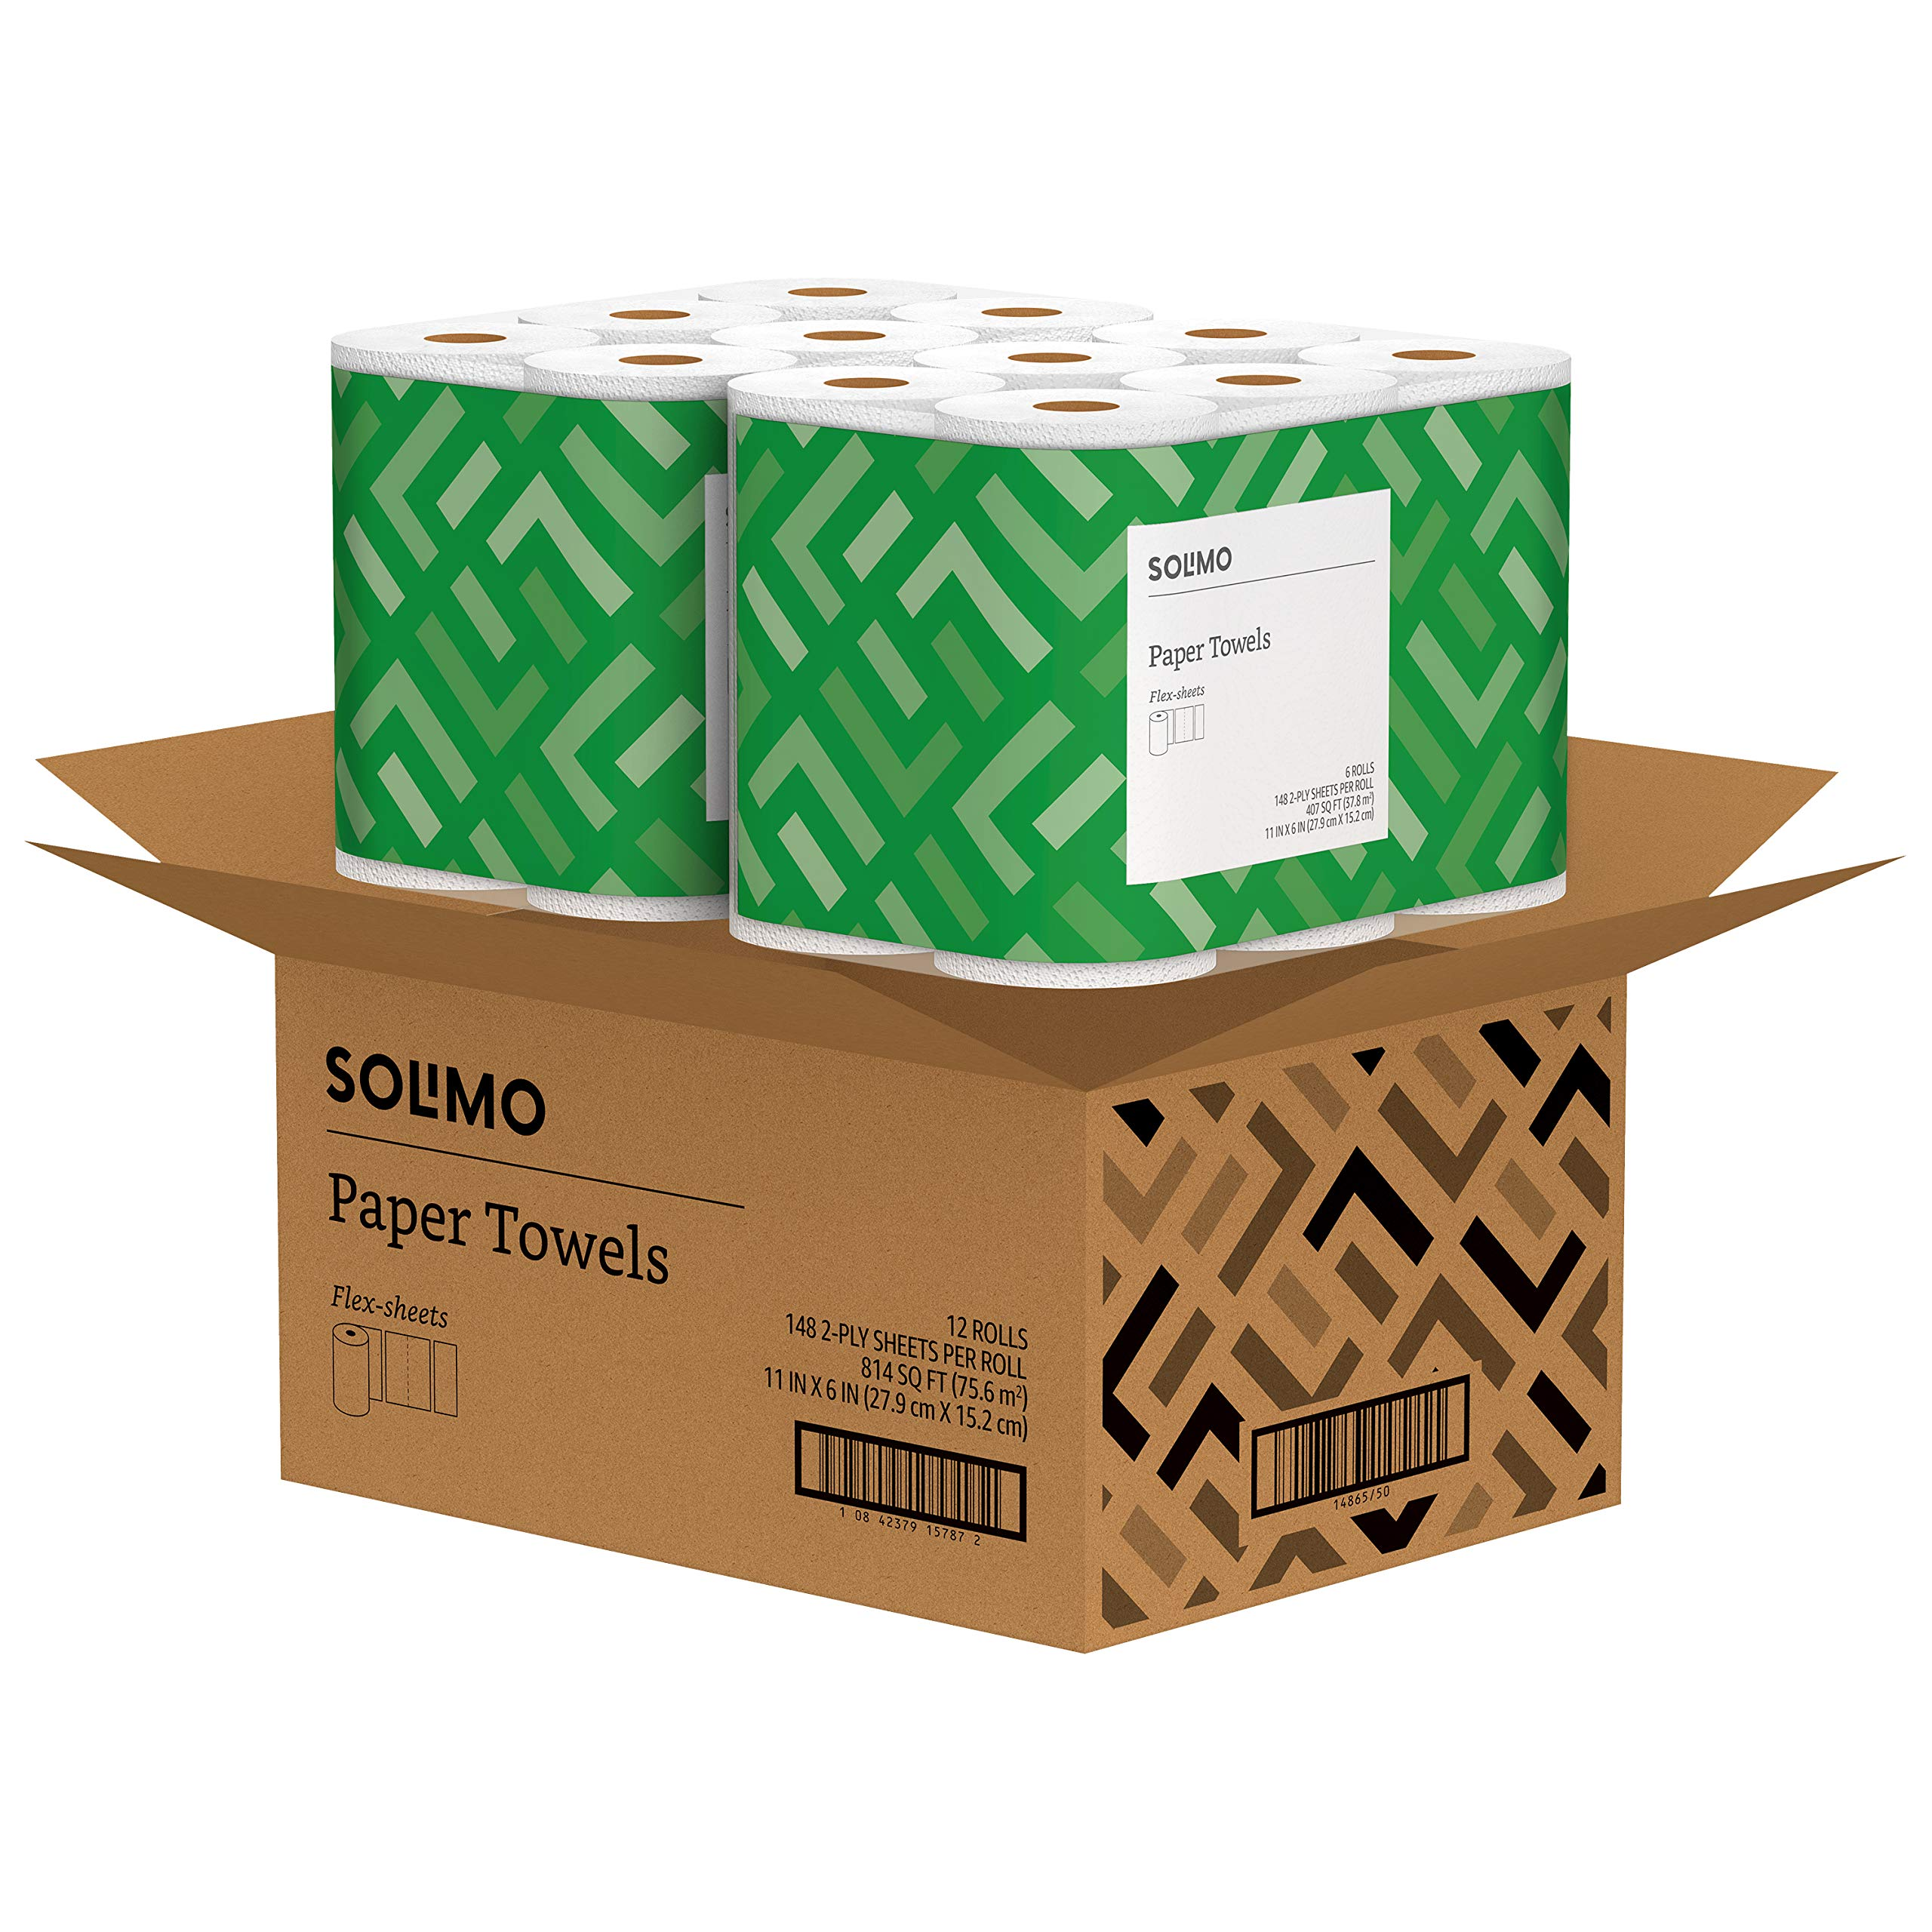 Solimo Basic Flex-Sheets Paper Towels, 12 Value Rolls, White, 148 Sheets per Roll (New Version) by SOLIMO (Image #2)